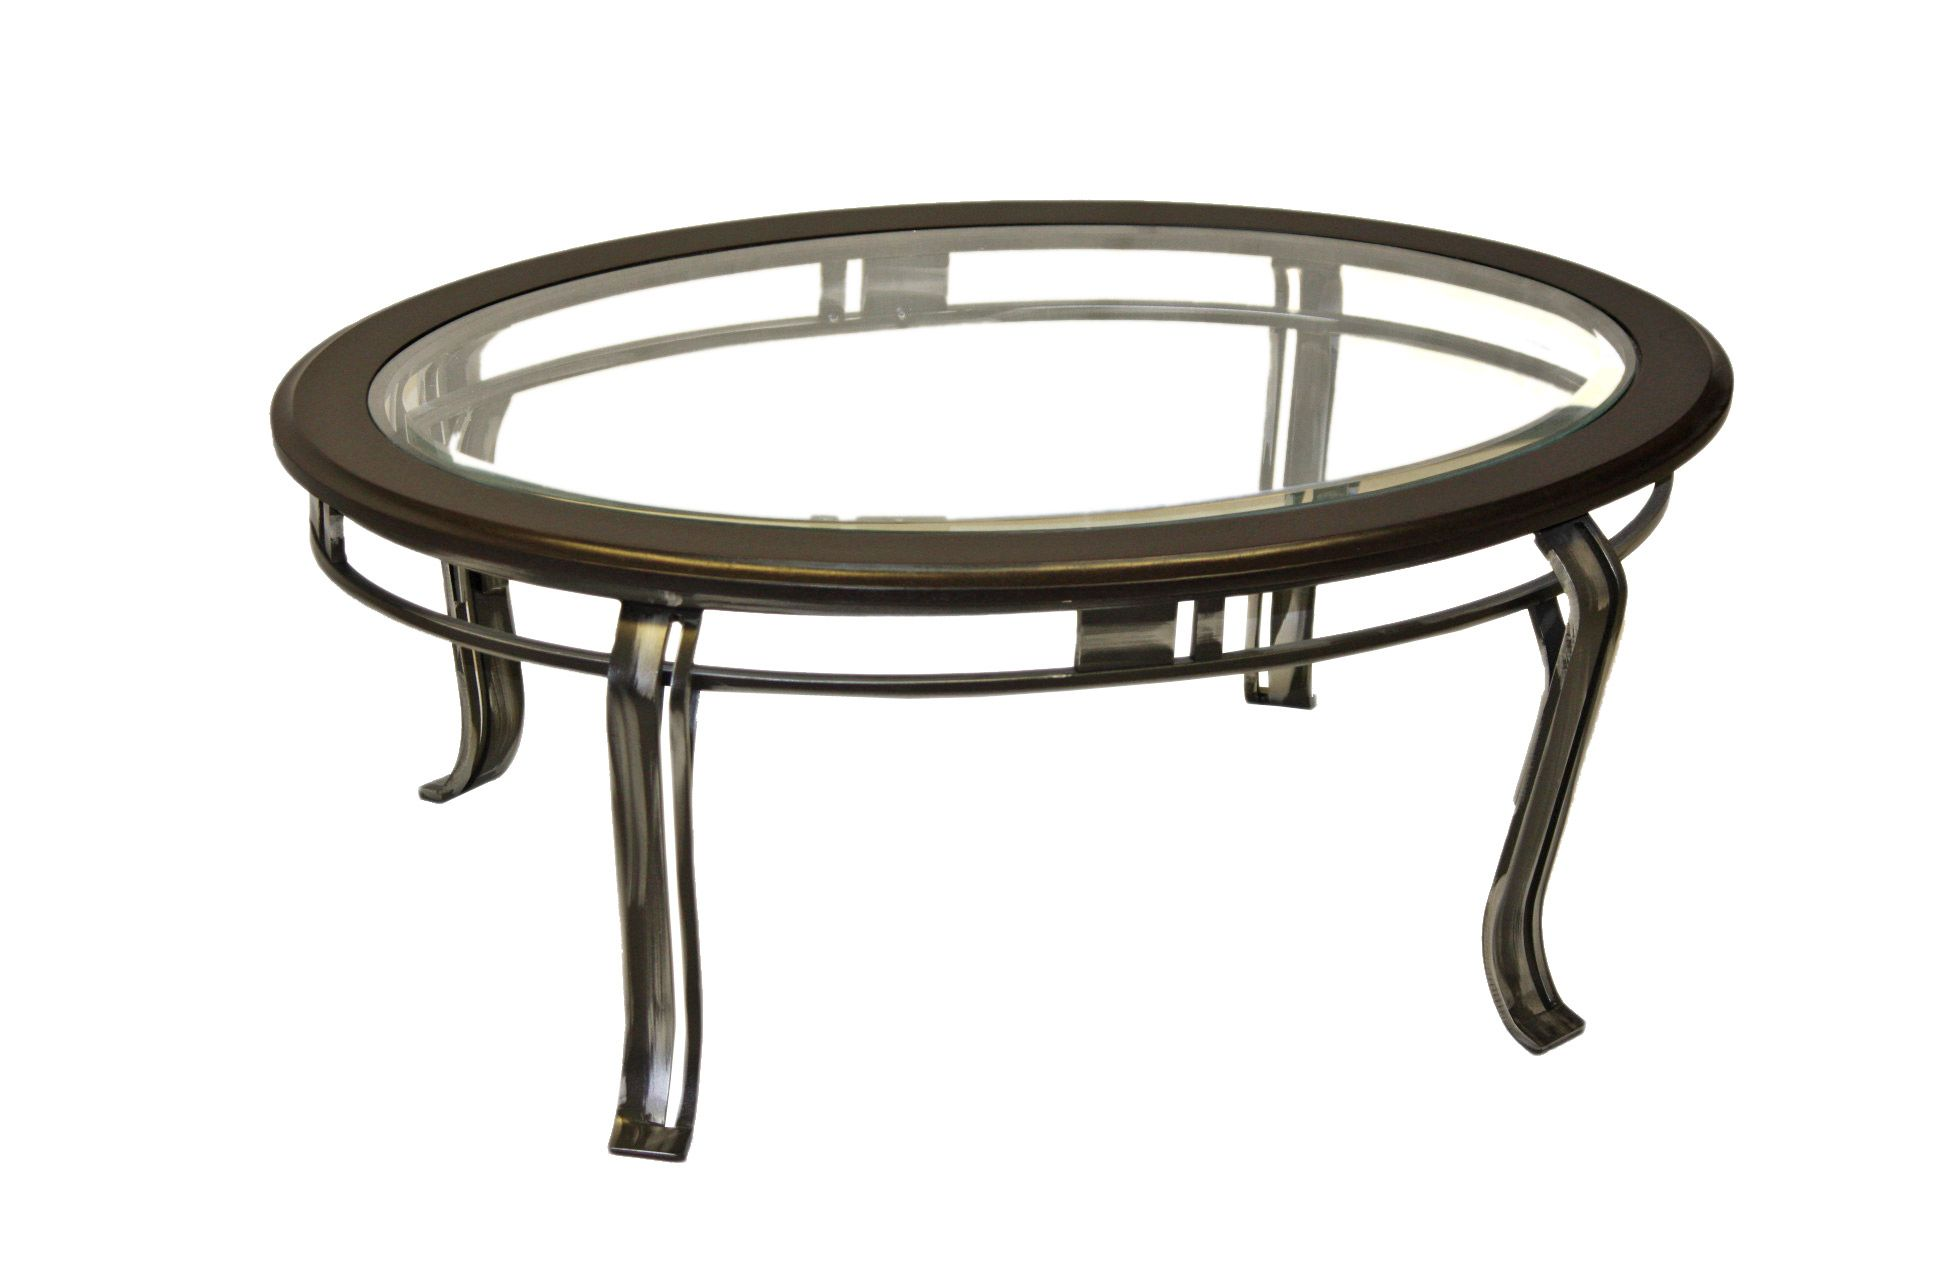 Table De Centre Table Living Room Acier Steel Meuble  # Meuble Living En Bois